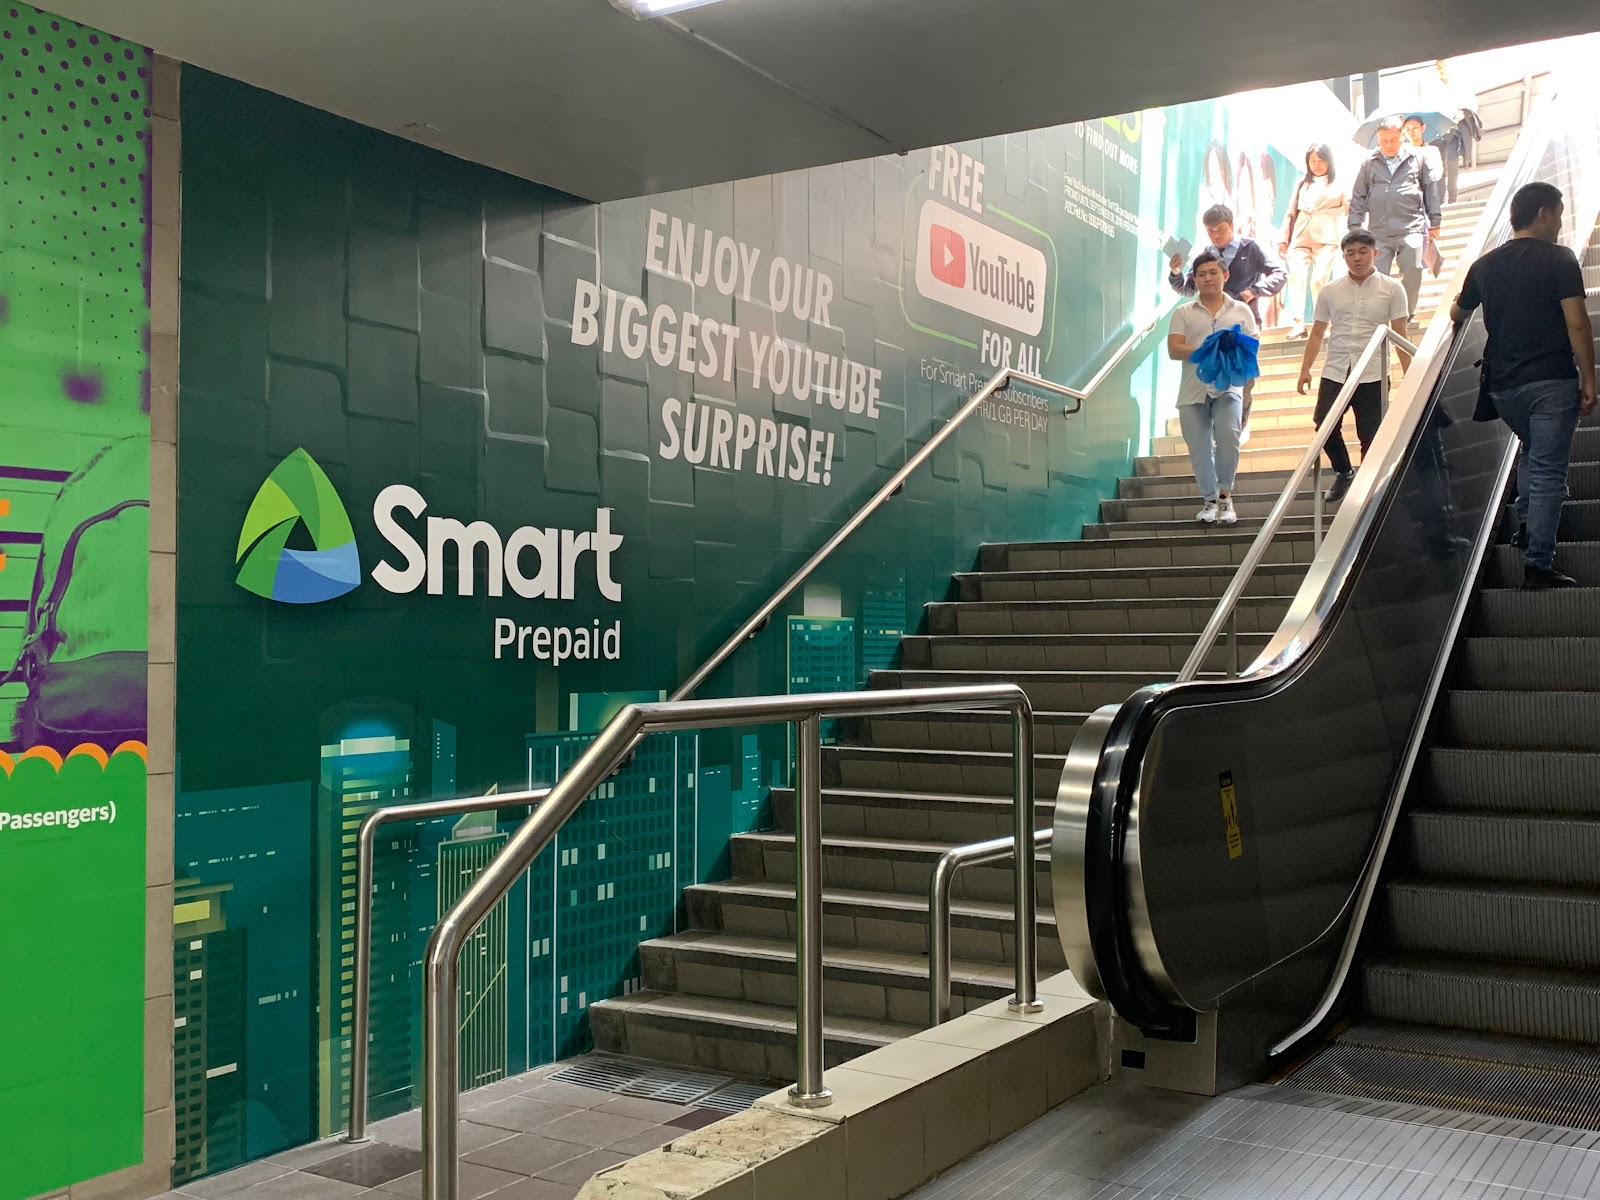 Smart communications ooh ad paseo underpass 2019 rsci